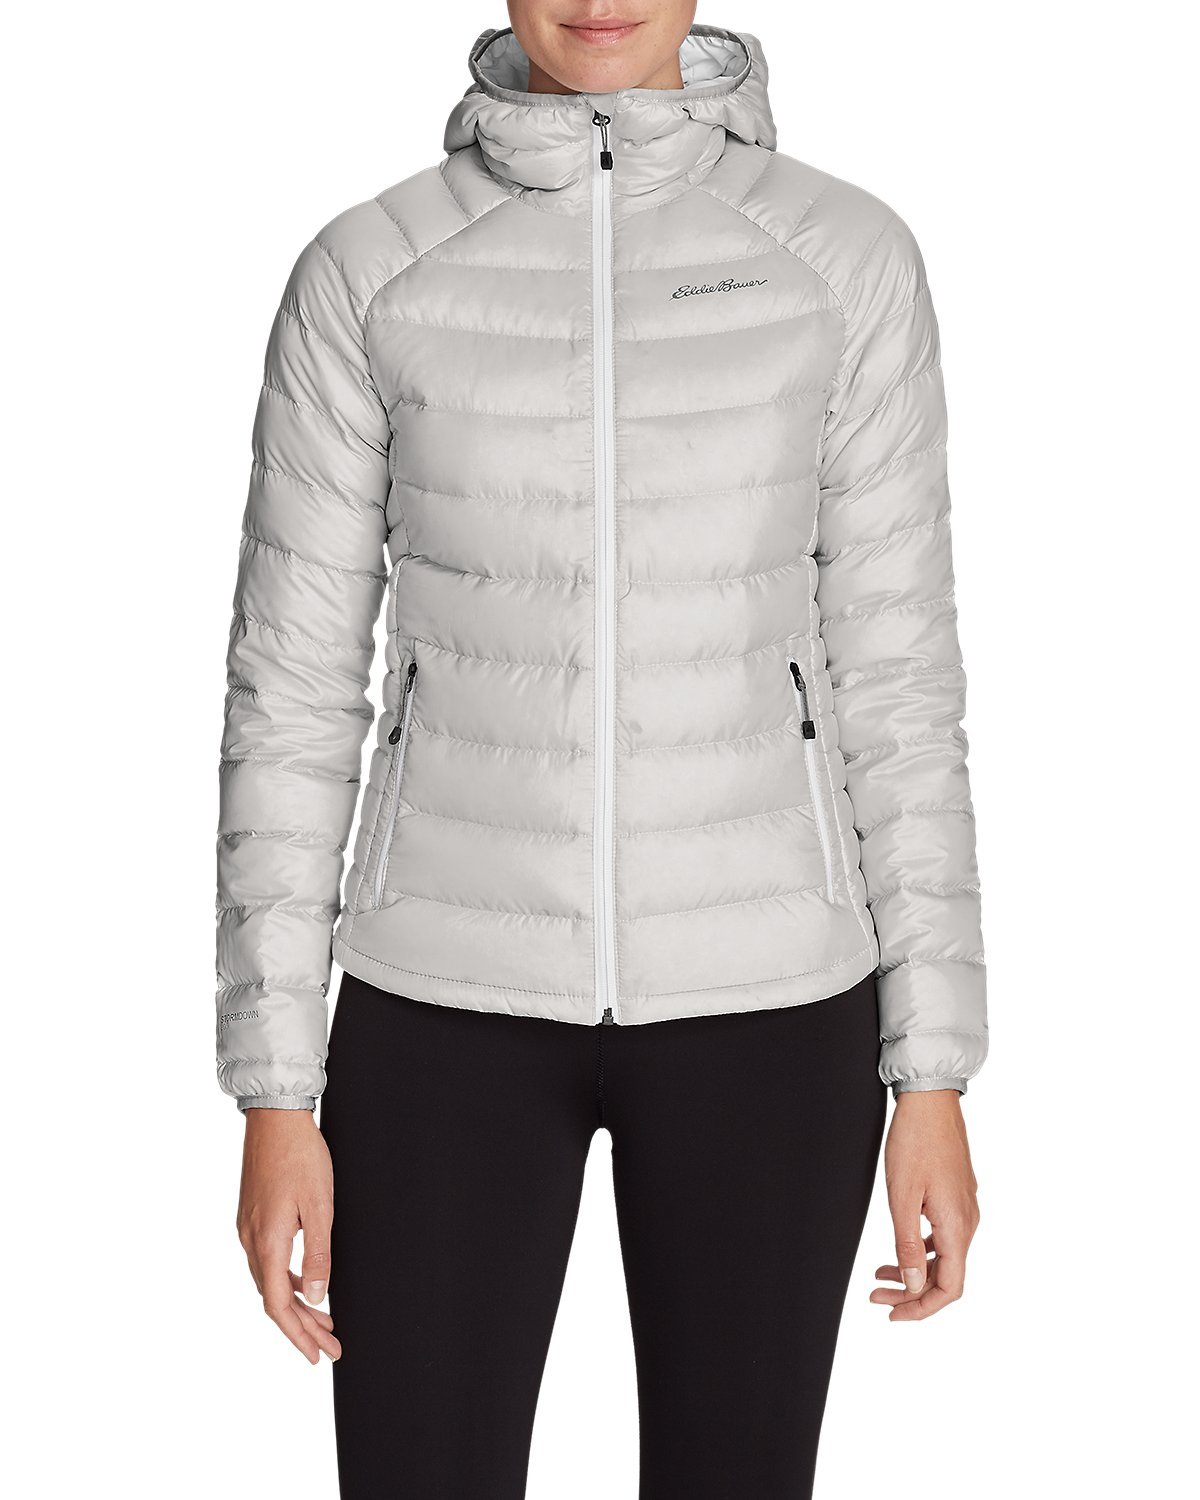 Women's Downlight StormDown Hooded Jacket (Frost Gray)